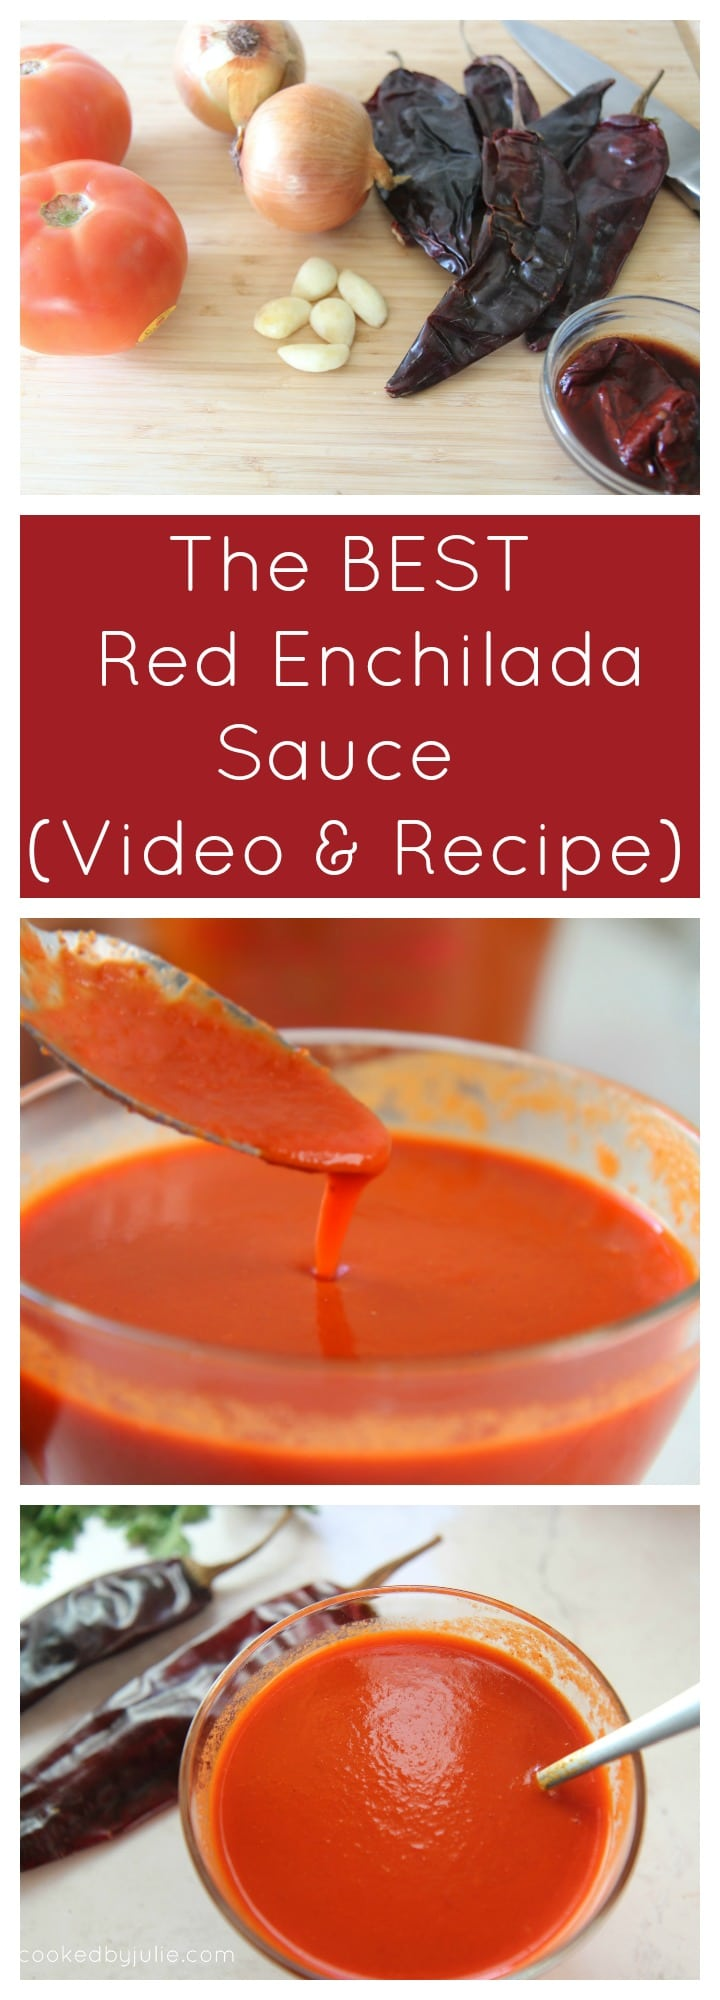 The Best Homemade Red Enchilada Sauce | Recipe and Video from Cooked By Julie